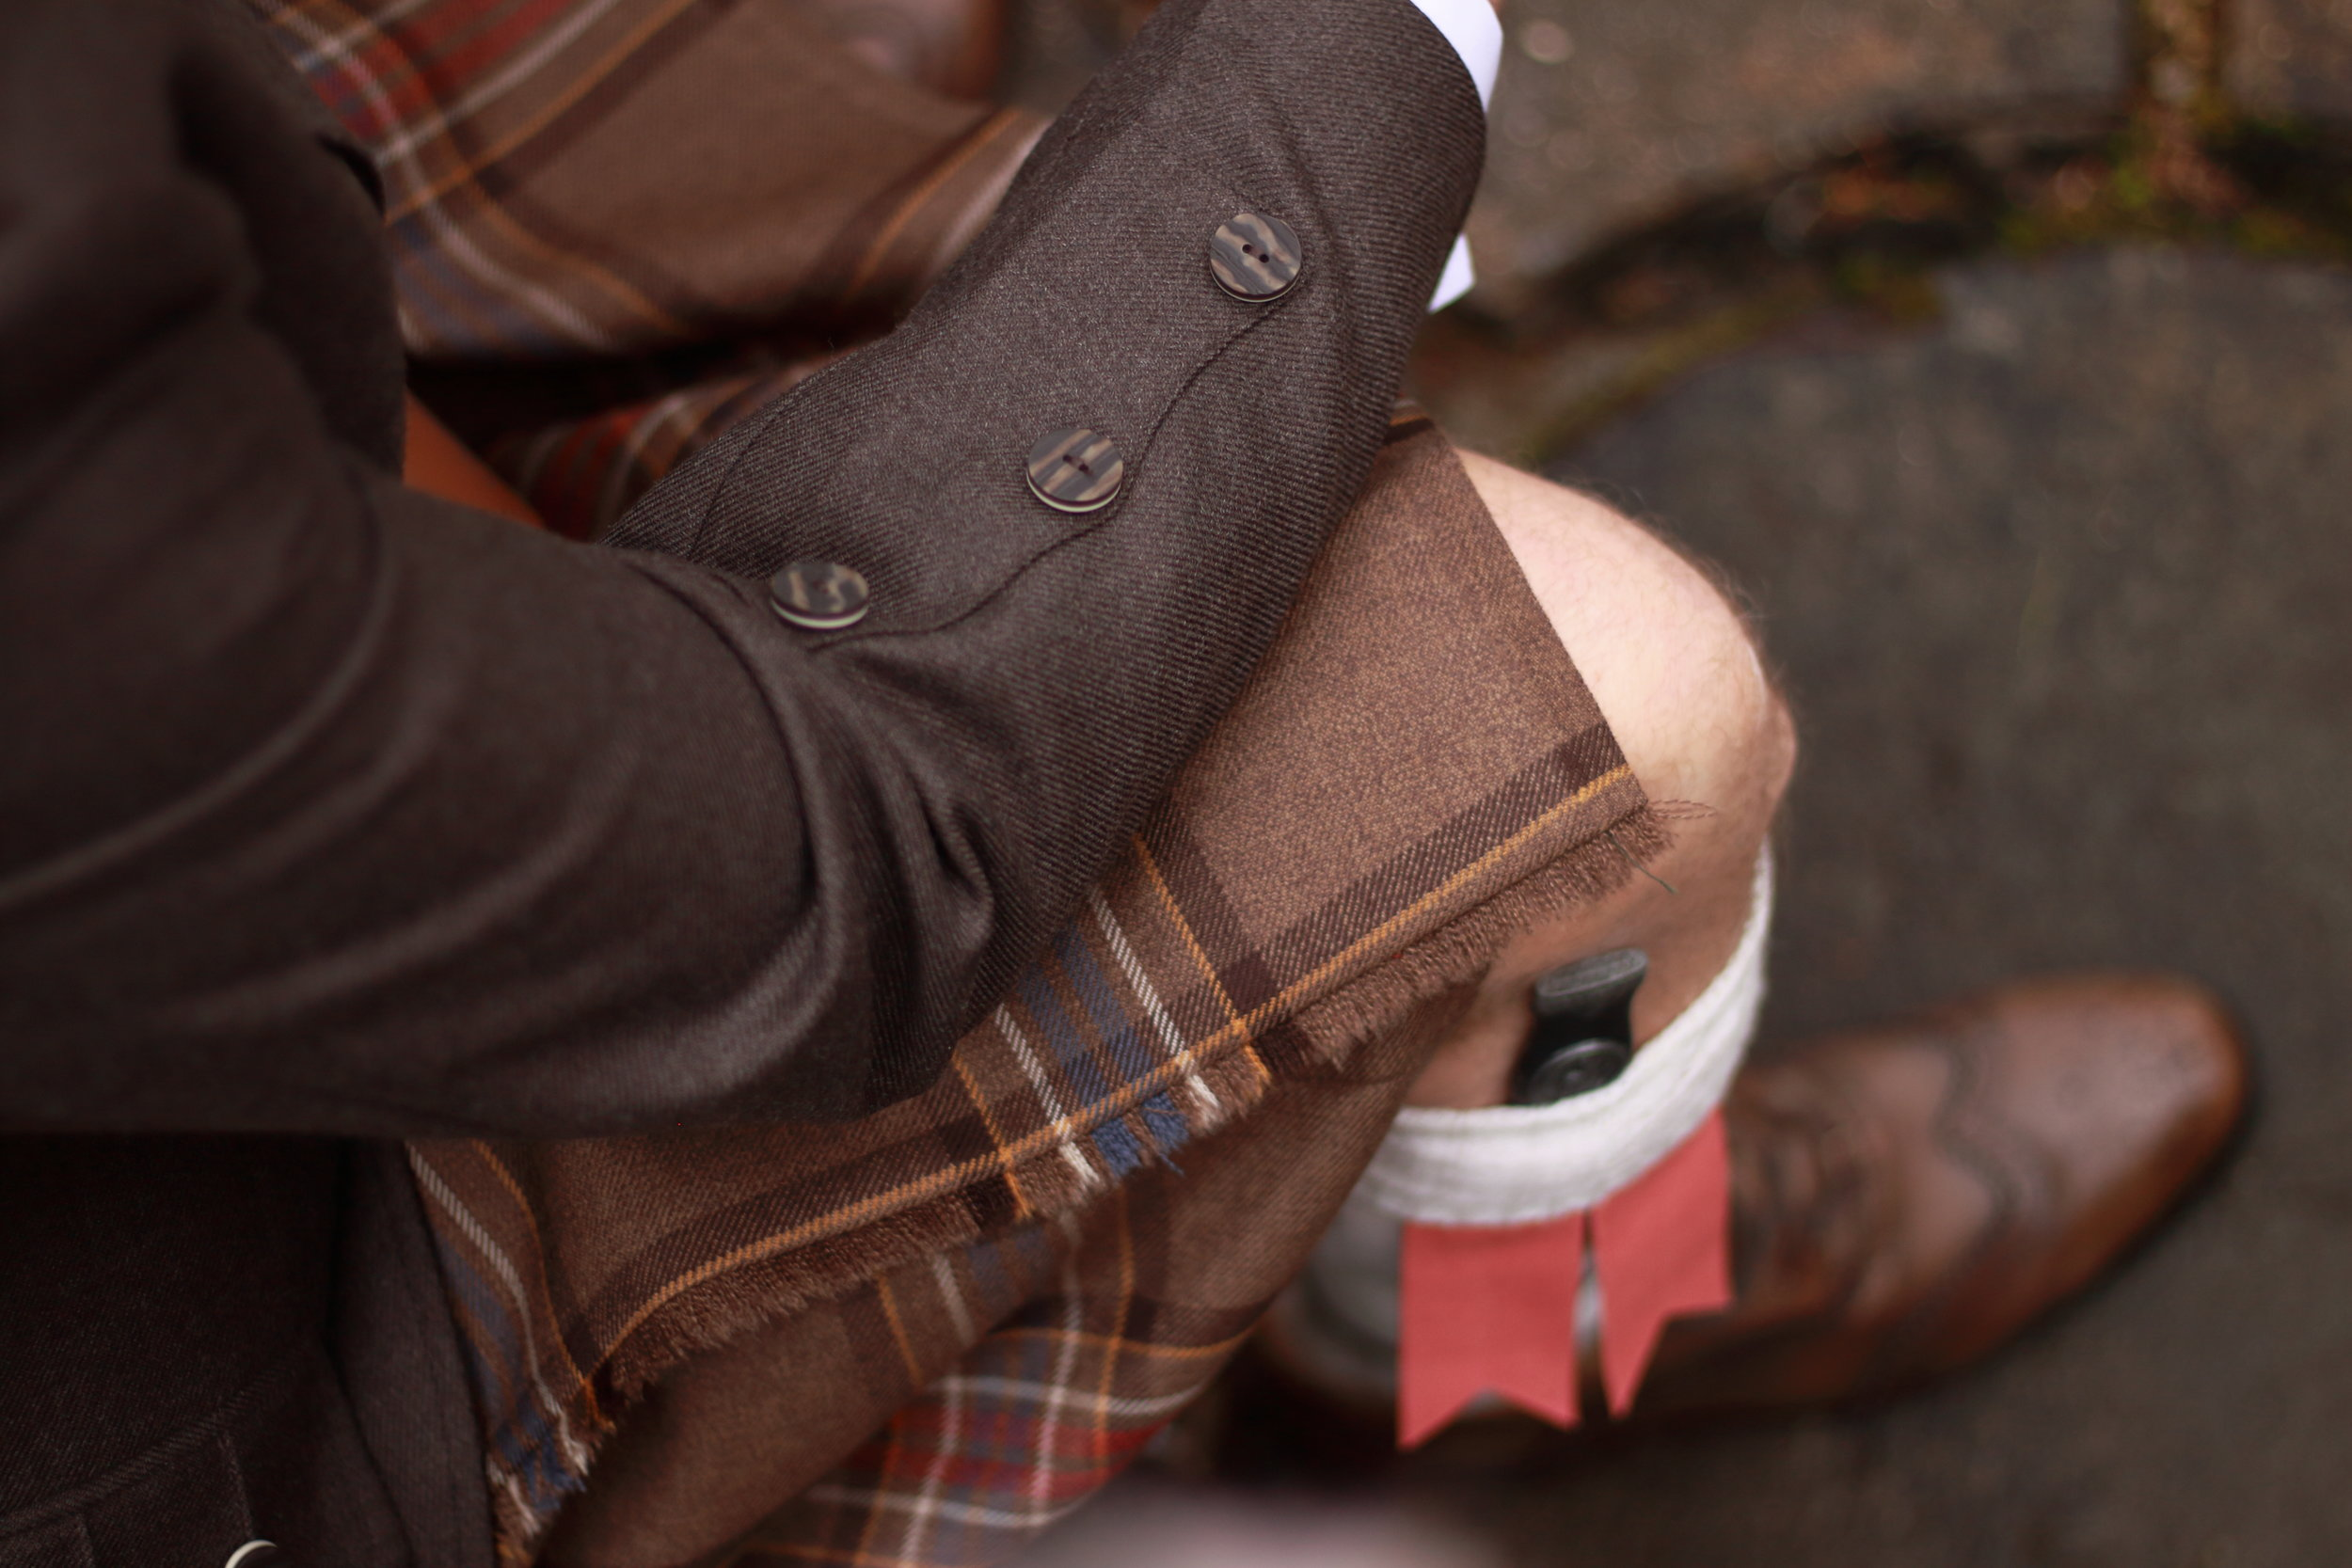 This tartan is Bonnie Banks and is a perfect match with our Peat jackets and brown brogues,